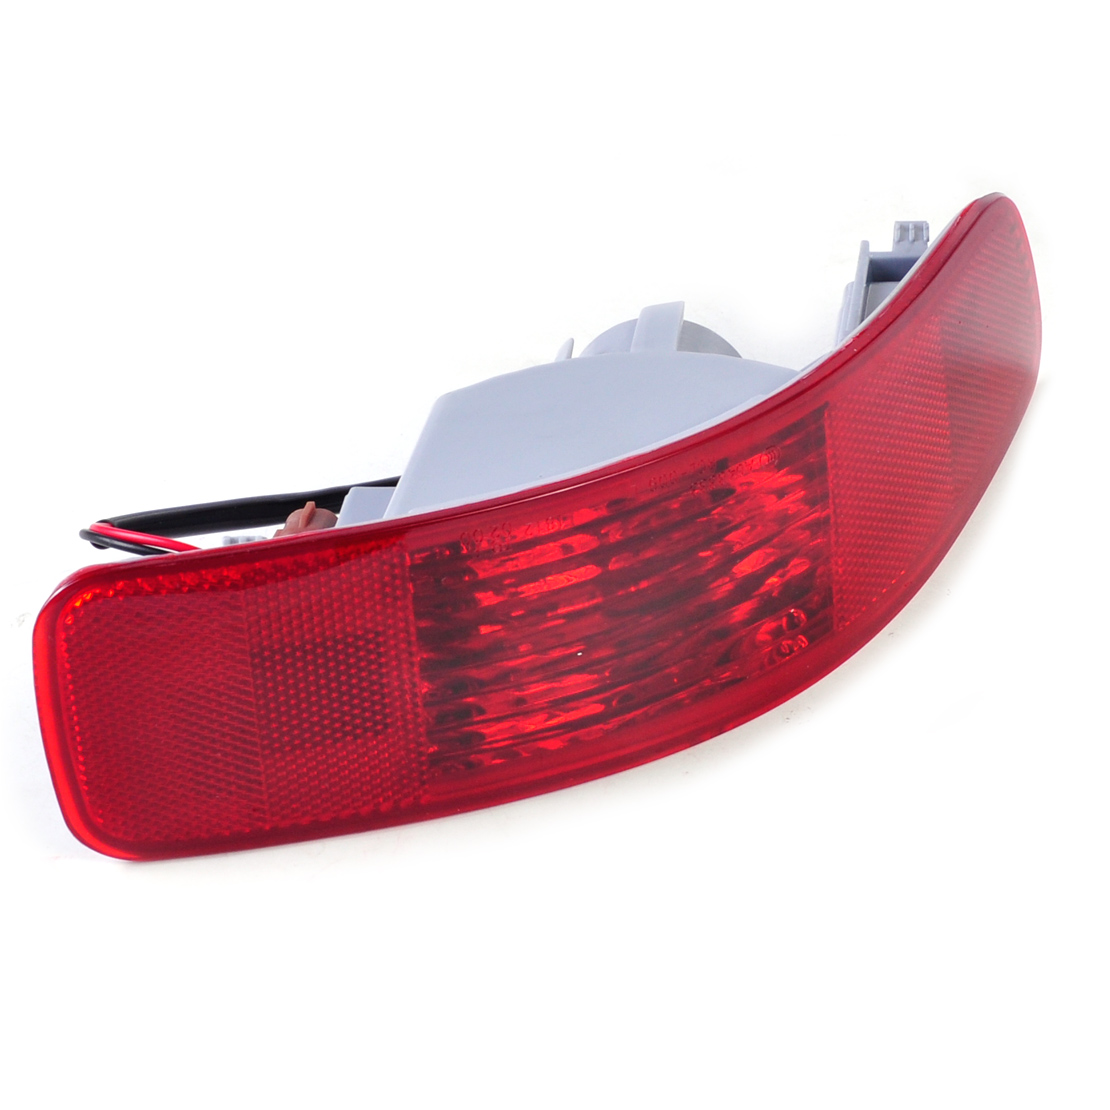 beler Rear Left Side Fog Light Bumper Lamp Reflector SL693-LH Fit for Mitsubishi Outlander 2007 2008 2009 2010 2011 2012 2013 beler rear left side fog light bumper lamp reflector sl693 lh fit for mitsubishi outlander 2007 2008 2009 2010 2011 2012 2013